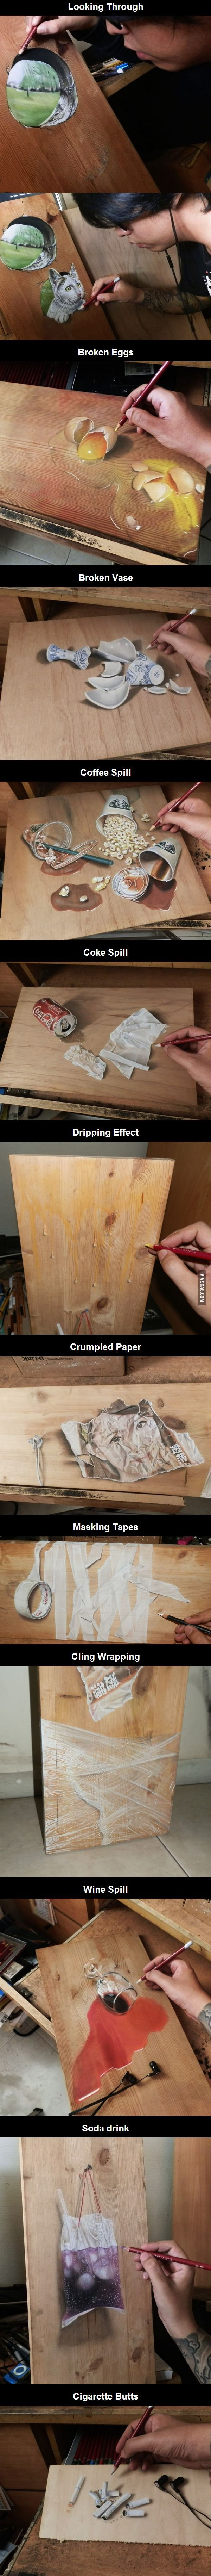 Photorealistic Pastel Drawings On Boards Of Wood. - 9GAG